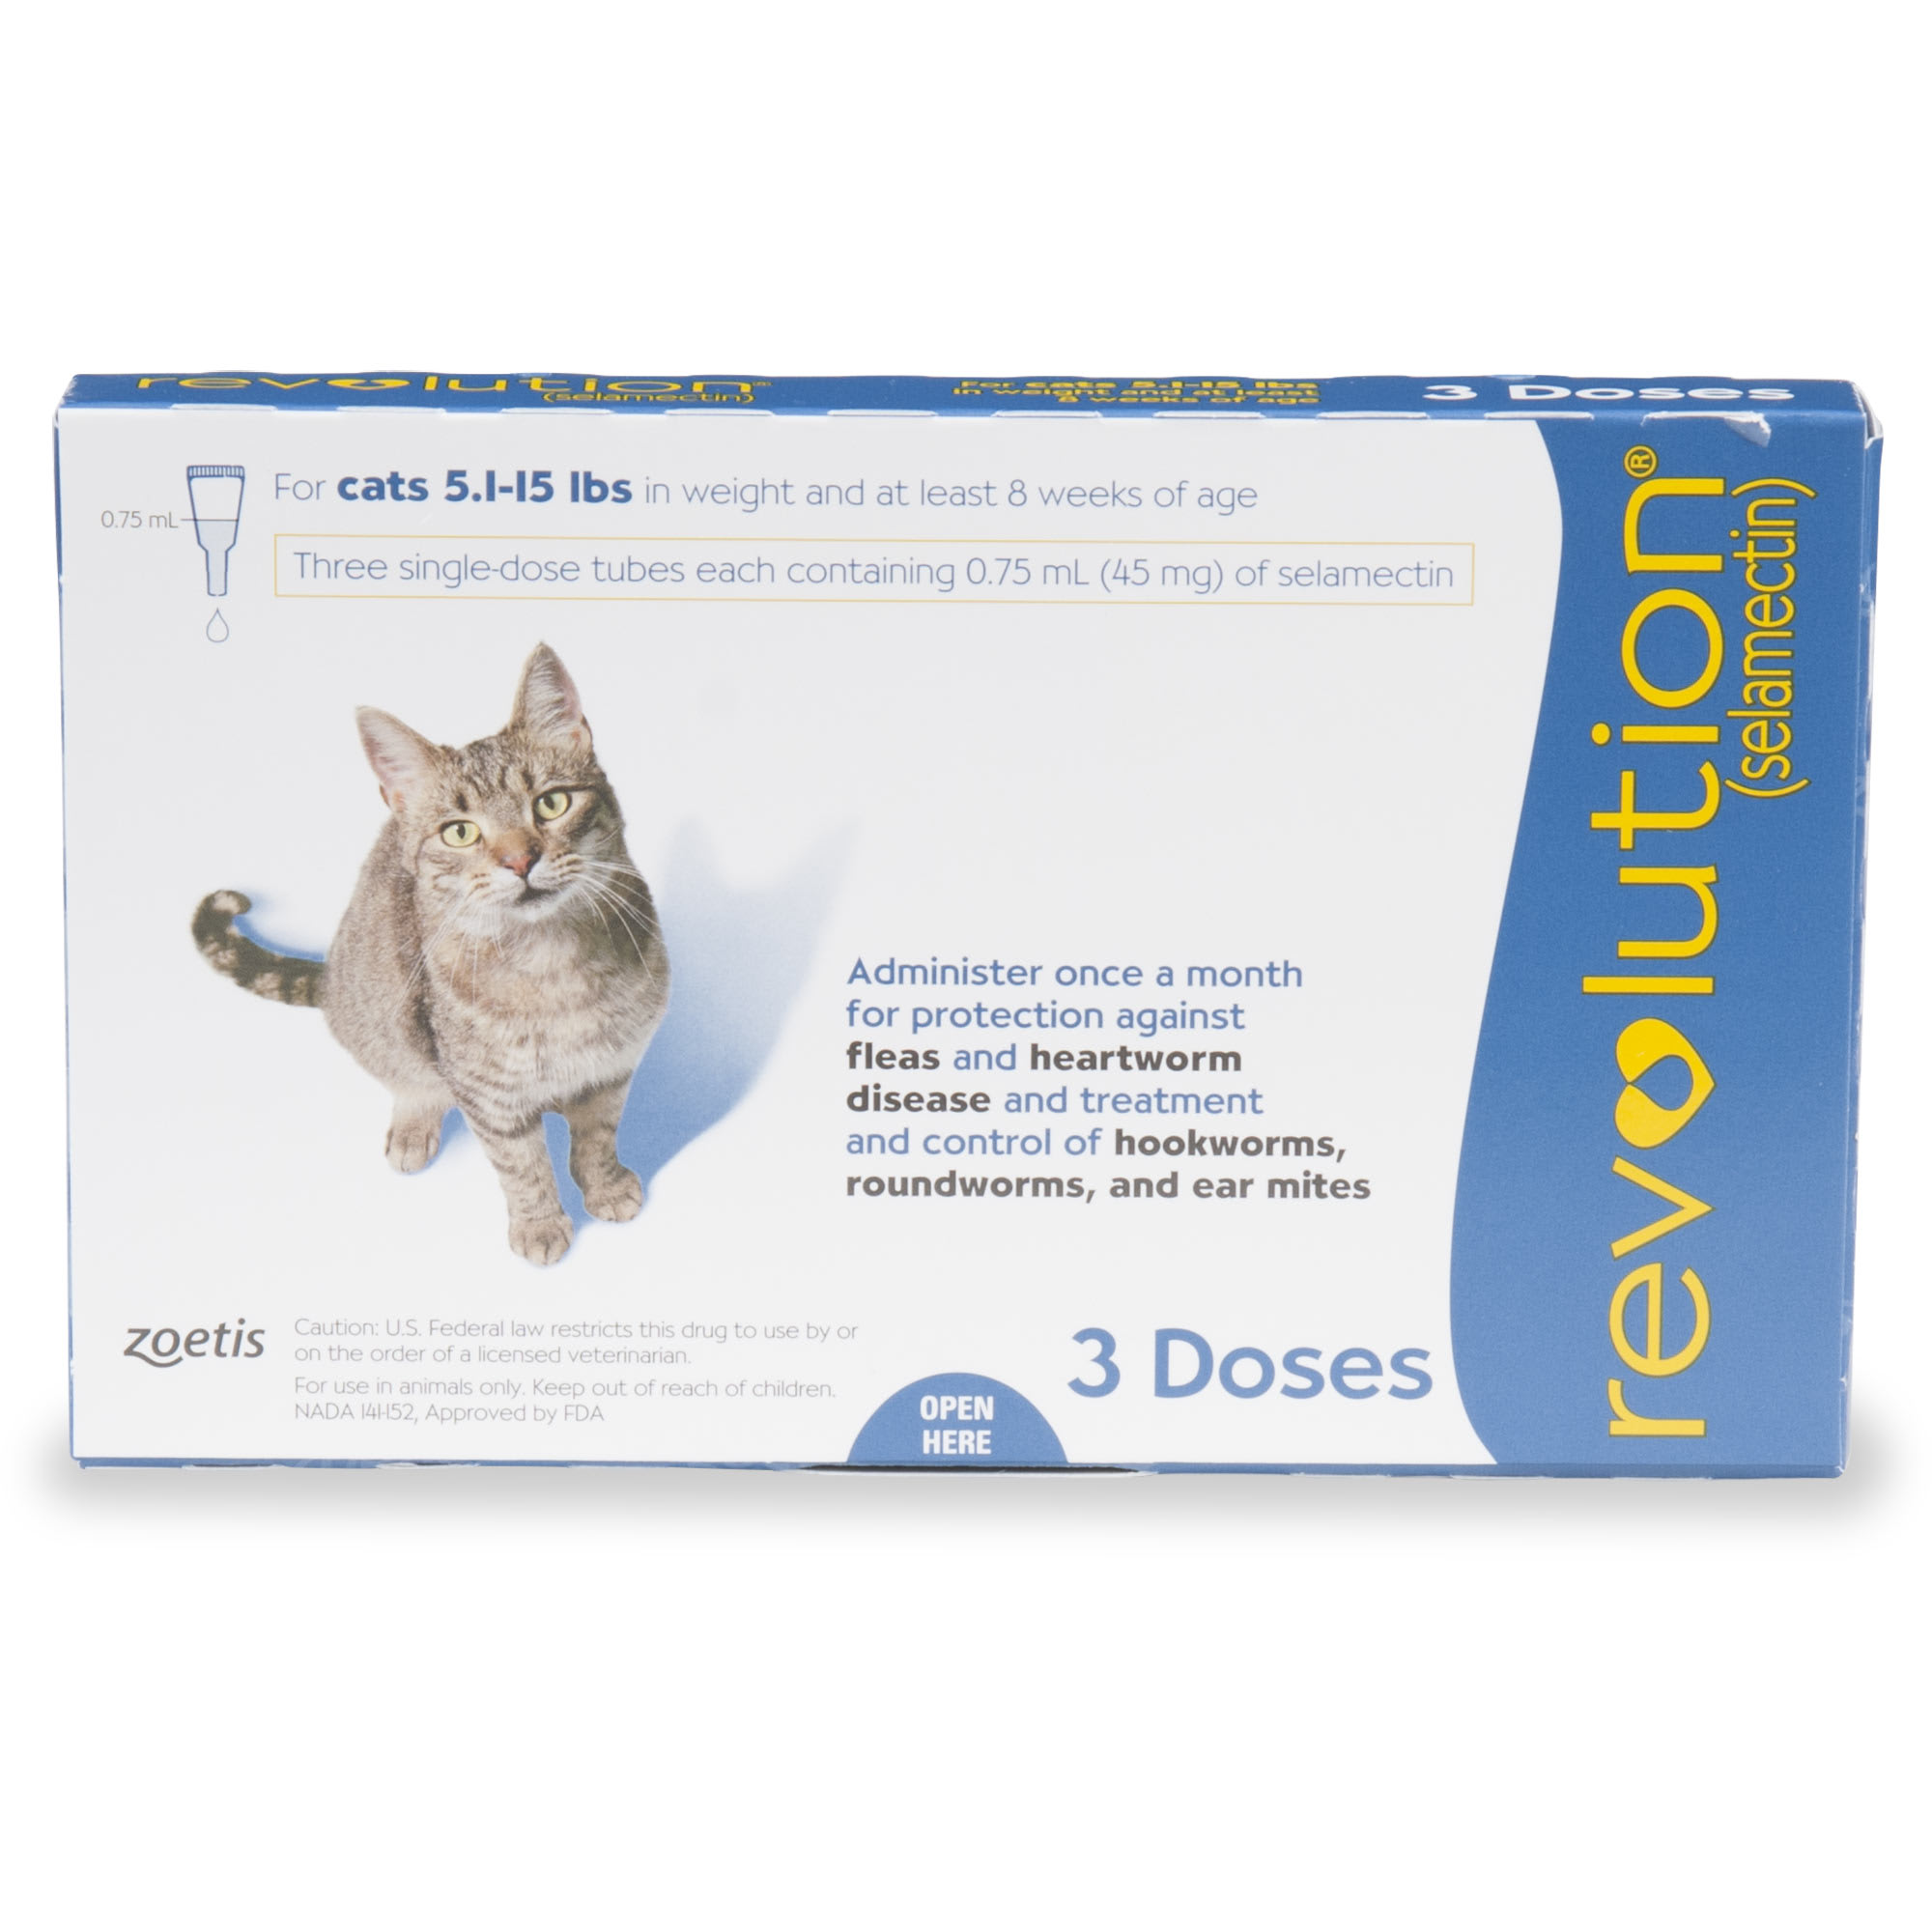 Revolution Topical Solution For Cats 5 1 15 Lbs 3 Month Supply Petco